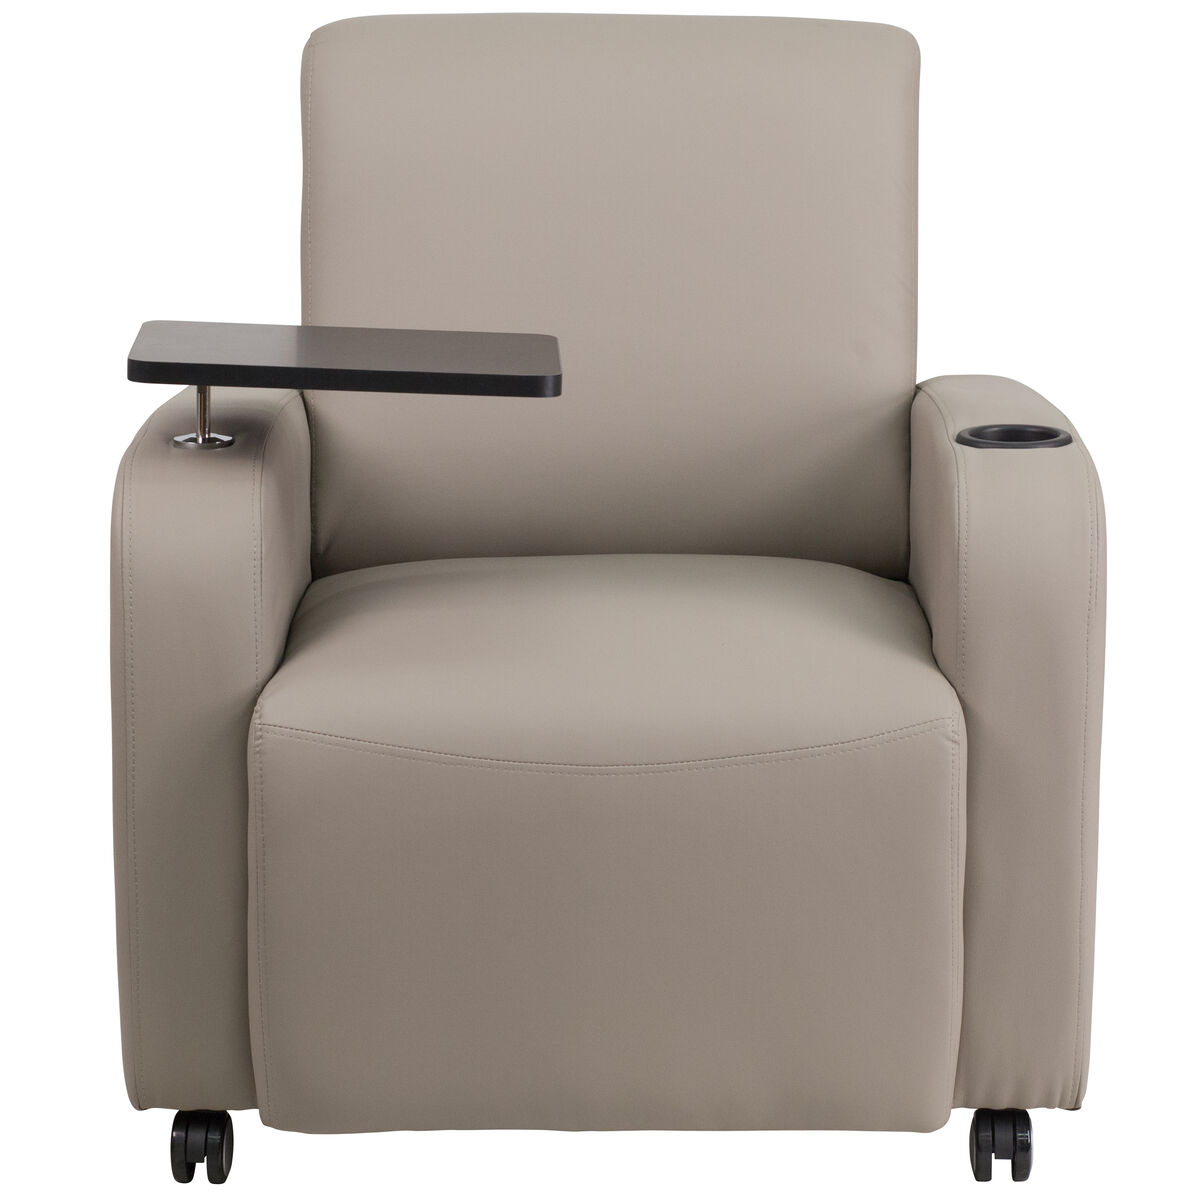 Miraculous Gray Leather Guest Chair With Tablet Arm Front Wheel Casters And Cup Holder Pdpeps Interior Chair Design Pdpepsorg